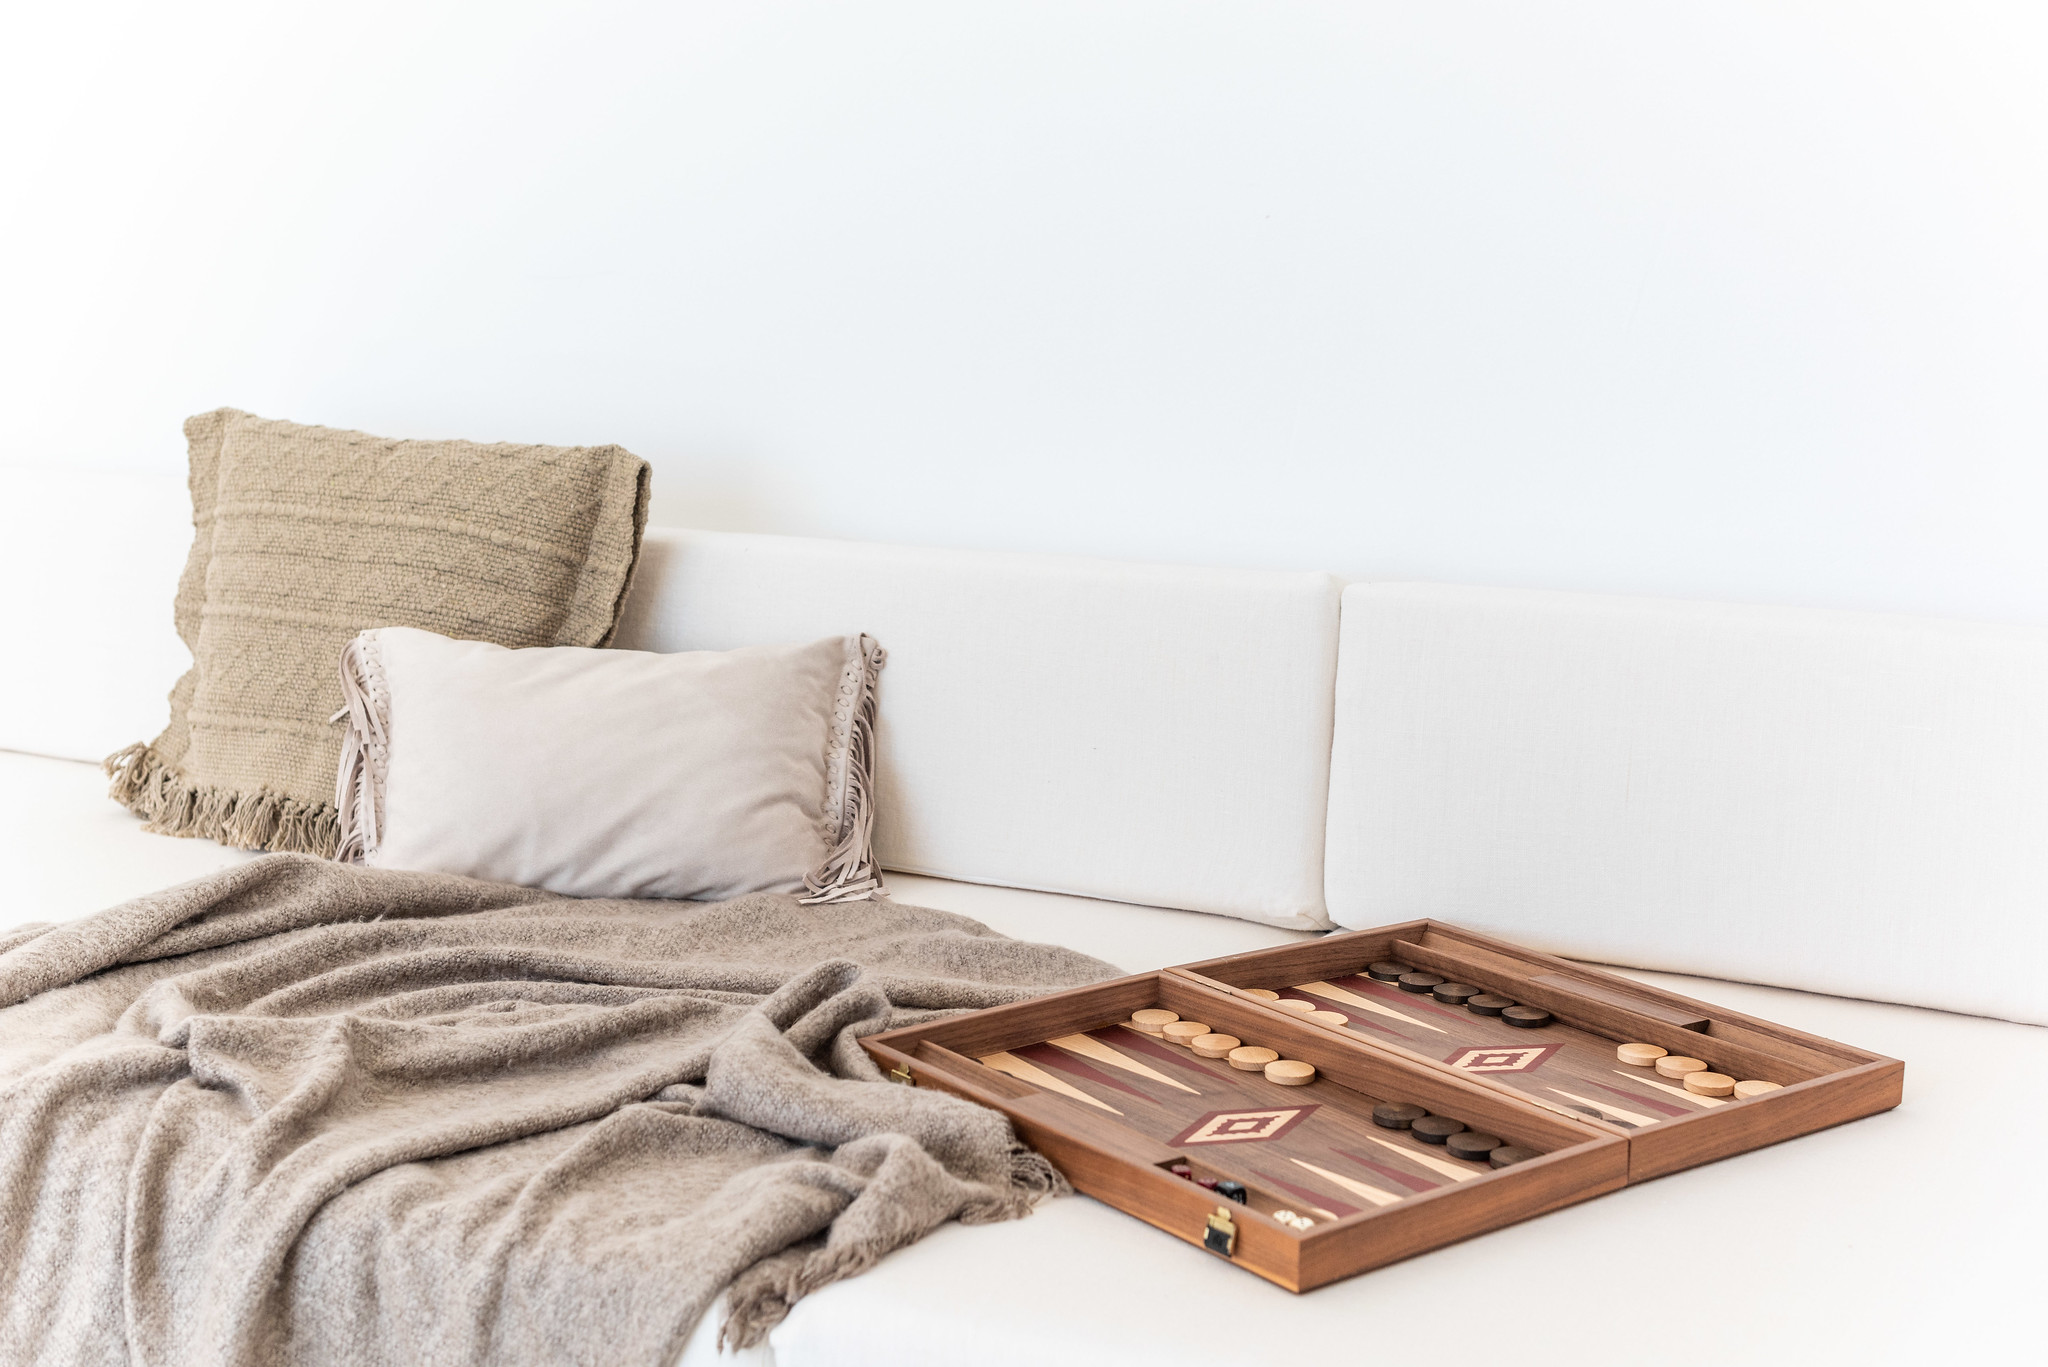 https://www.white-ibiza.com/wp-content/uploads/2020/05/white-ibiza-villas-can-cactus-backgammon.jpg